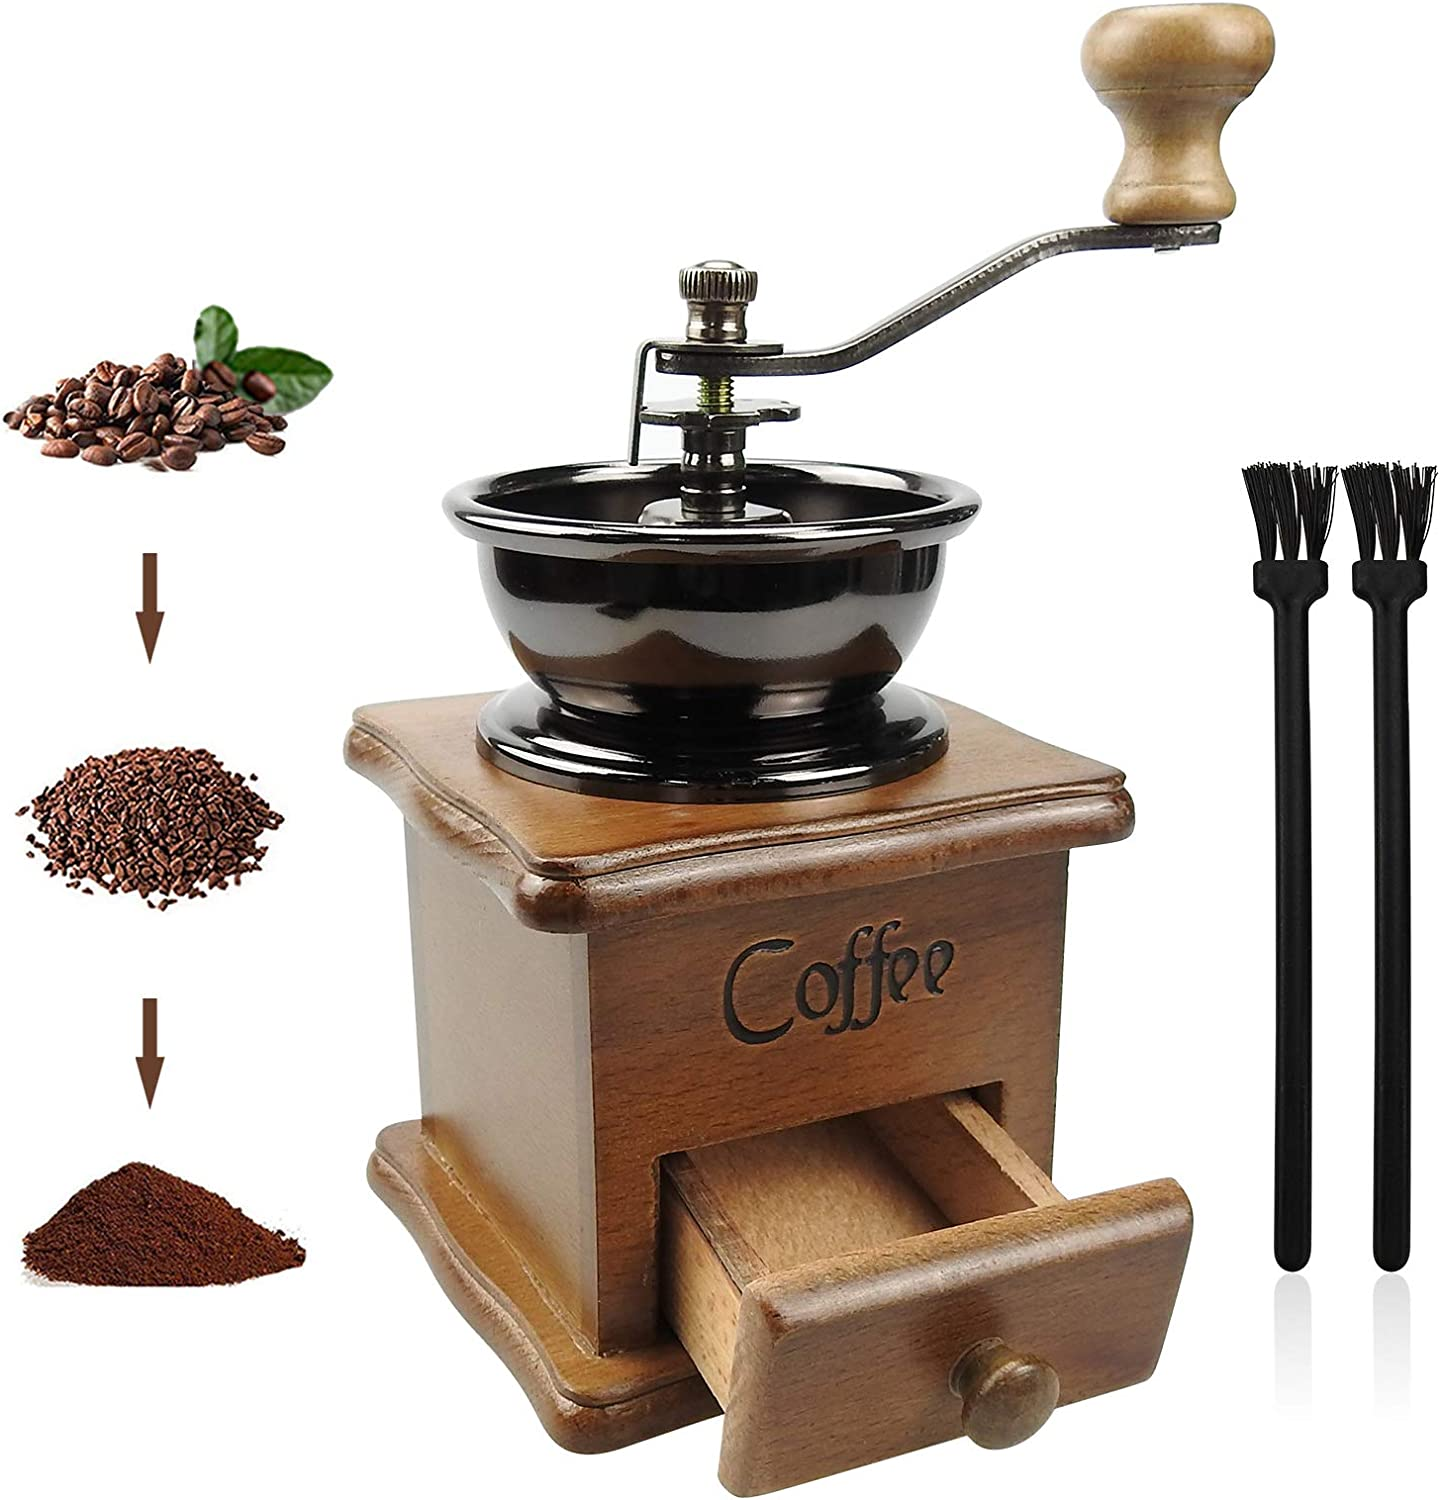 Manual Coffee Grinder, Vintage Style Wooden Hand Grinder Hand Coffee Grinder Roller Classic Coffee Mill Hand Crank Coffee Grinders With Brush for Drip Coffee French Press